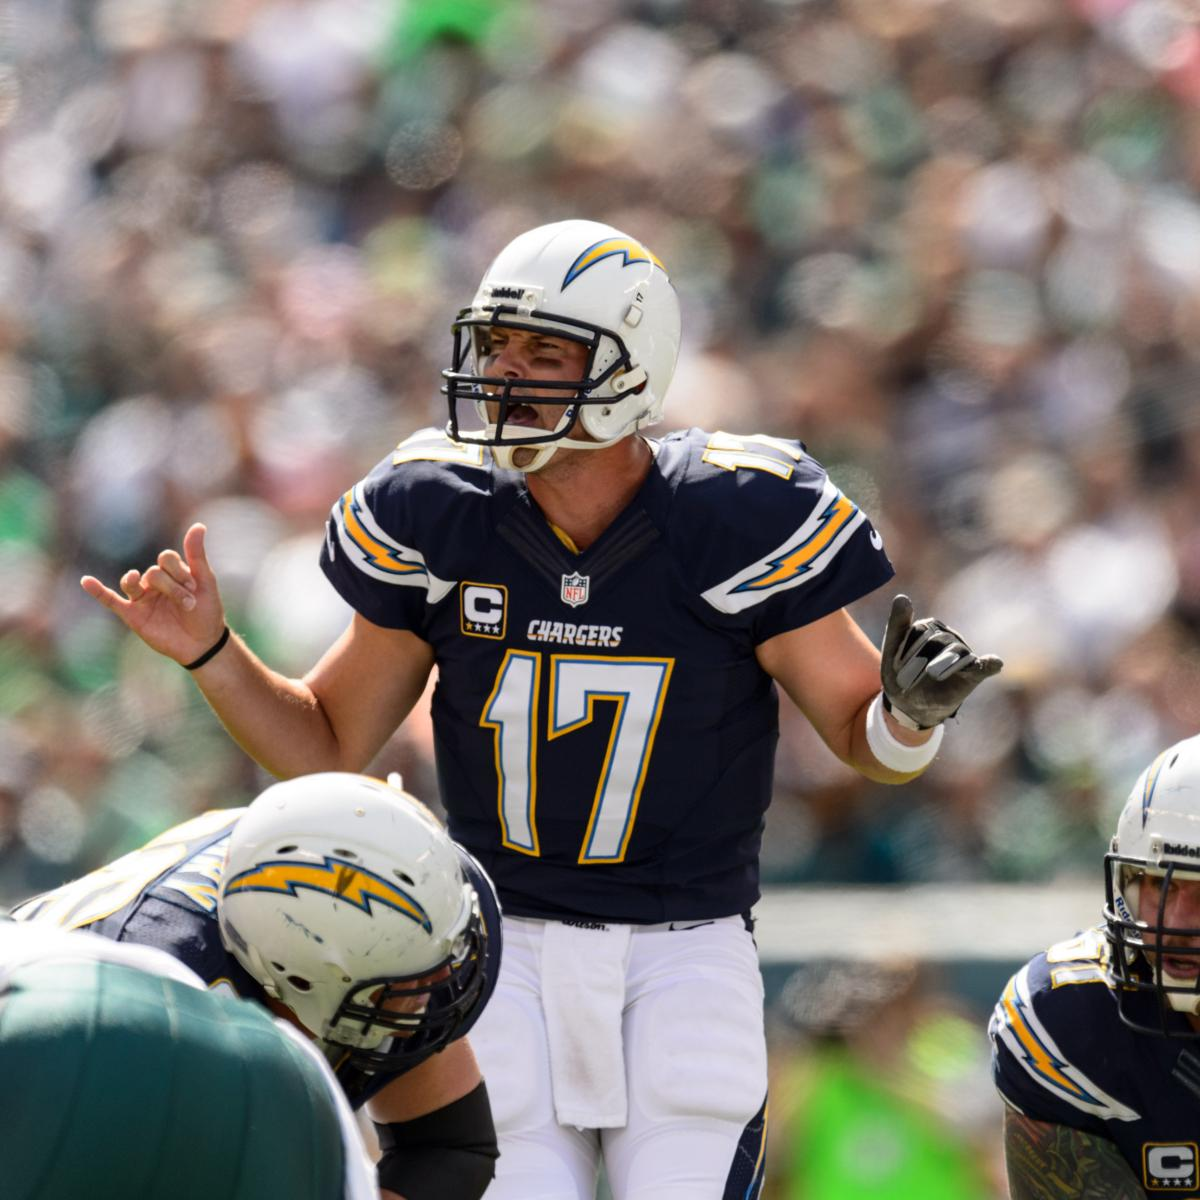 San Diego Chargers Backup Quarterback: Is Chargers QB Philip Rivers Finally Back To His Pro Bowl